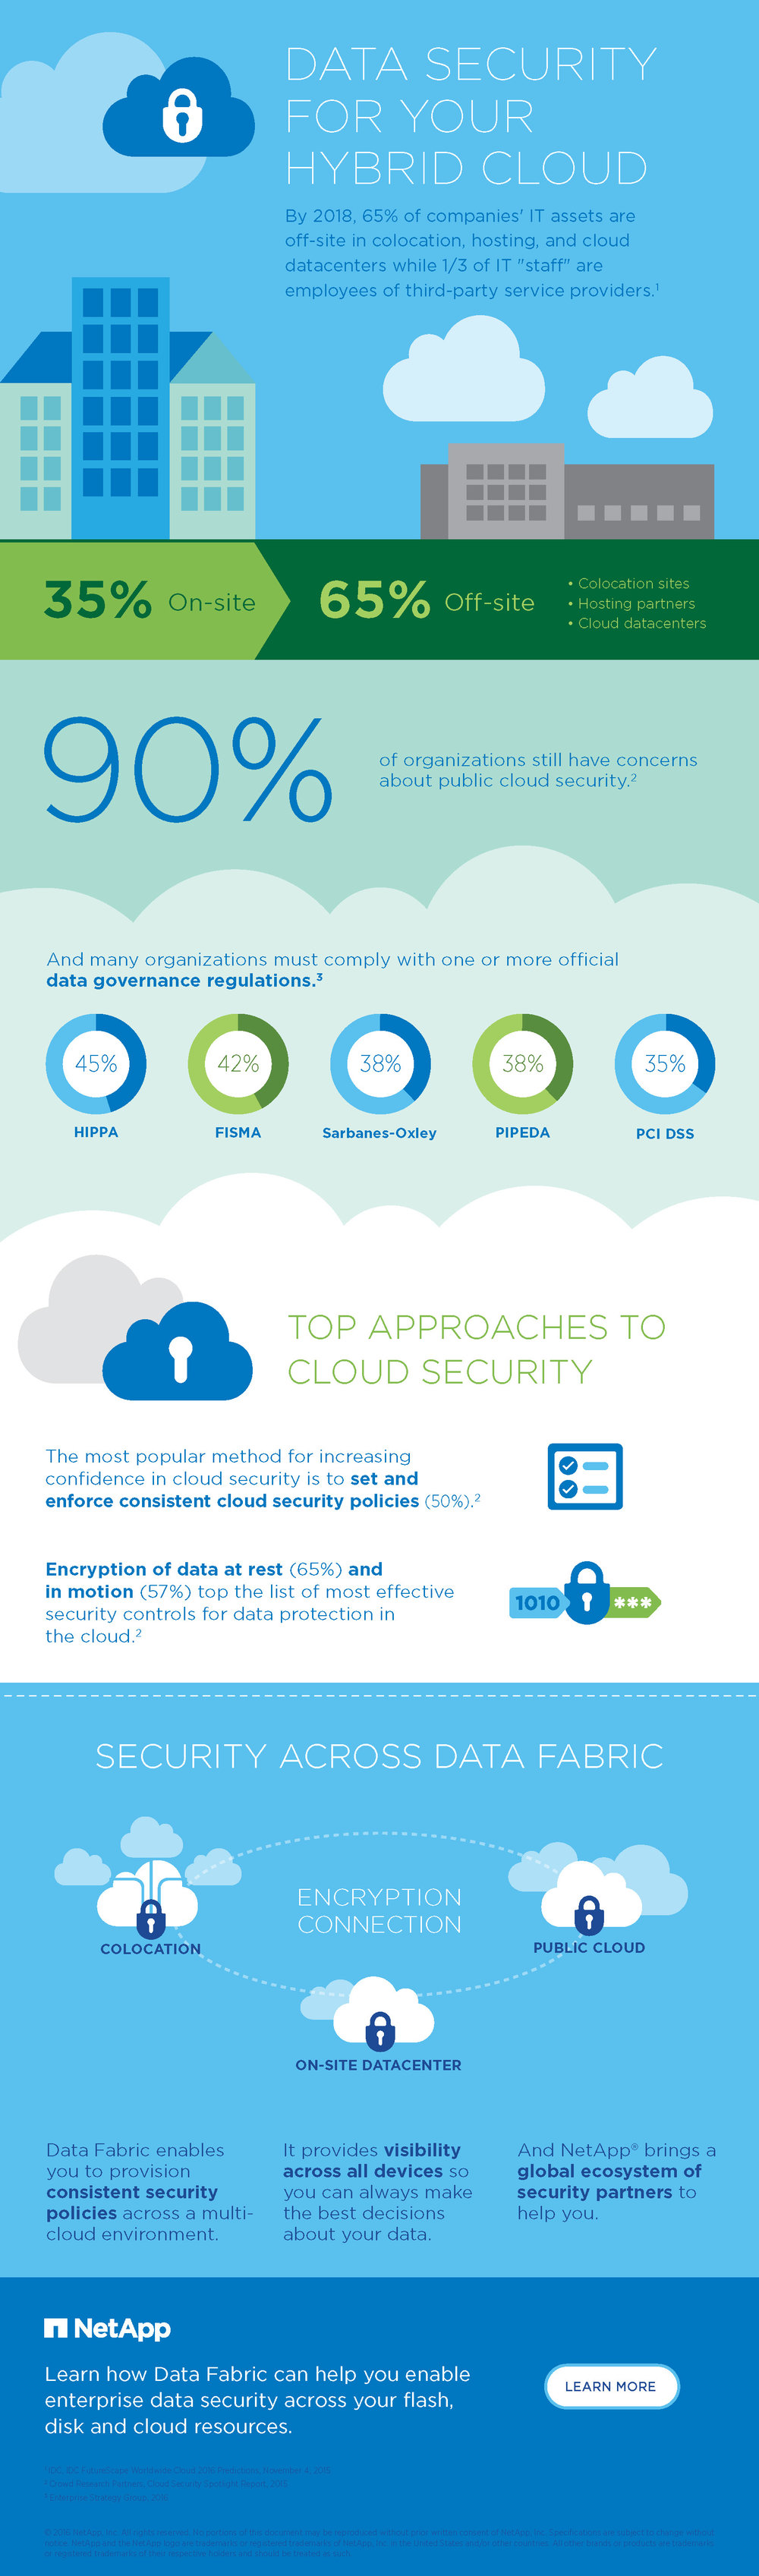 F_NA_DataSecurity_Infographic_052416.jpg